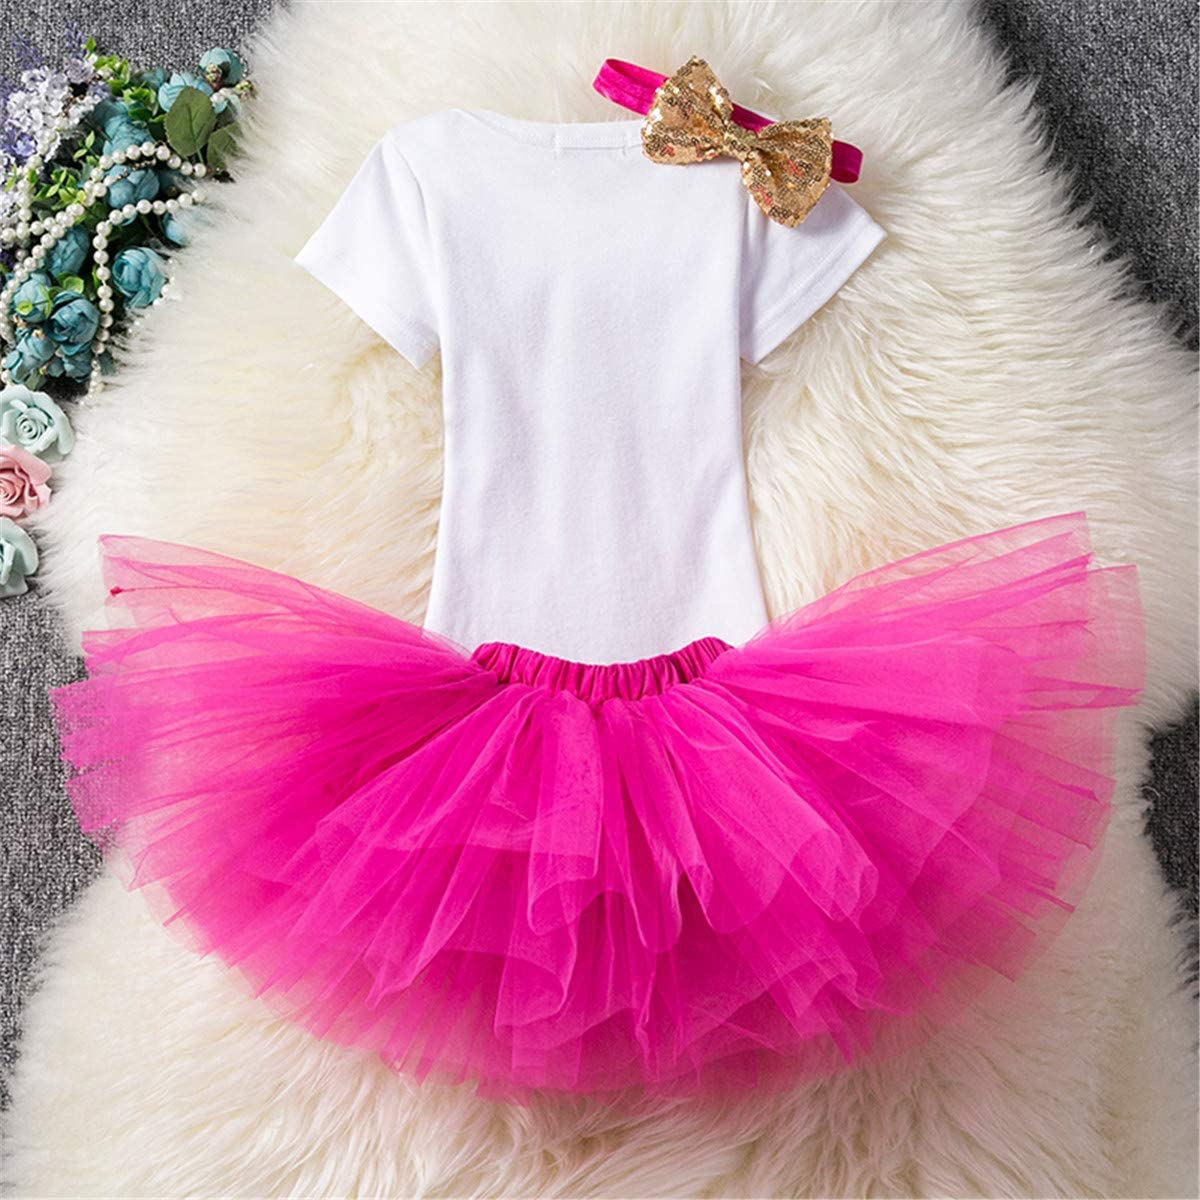 TTYAOVO Baby Girl 1st Birthday Princess Tutu Skirt Clothes 3 Piece Set Outfits Romper Skirt Headband + Leggings 4-24 Months 19-24 Months Rose 4-24M